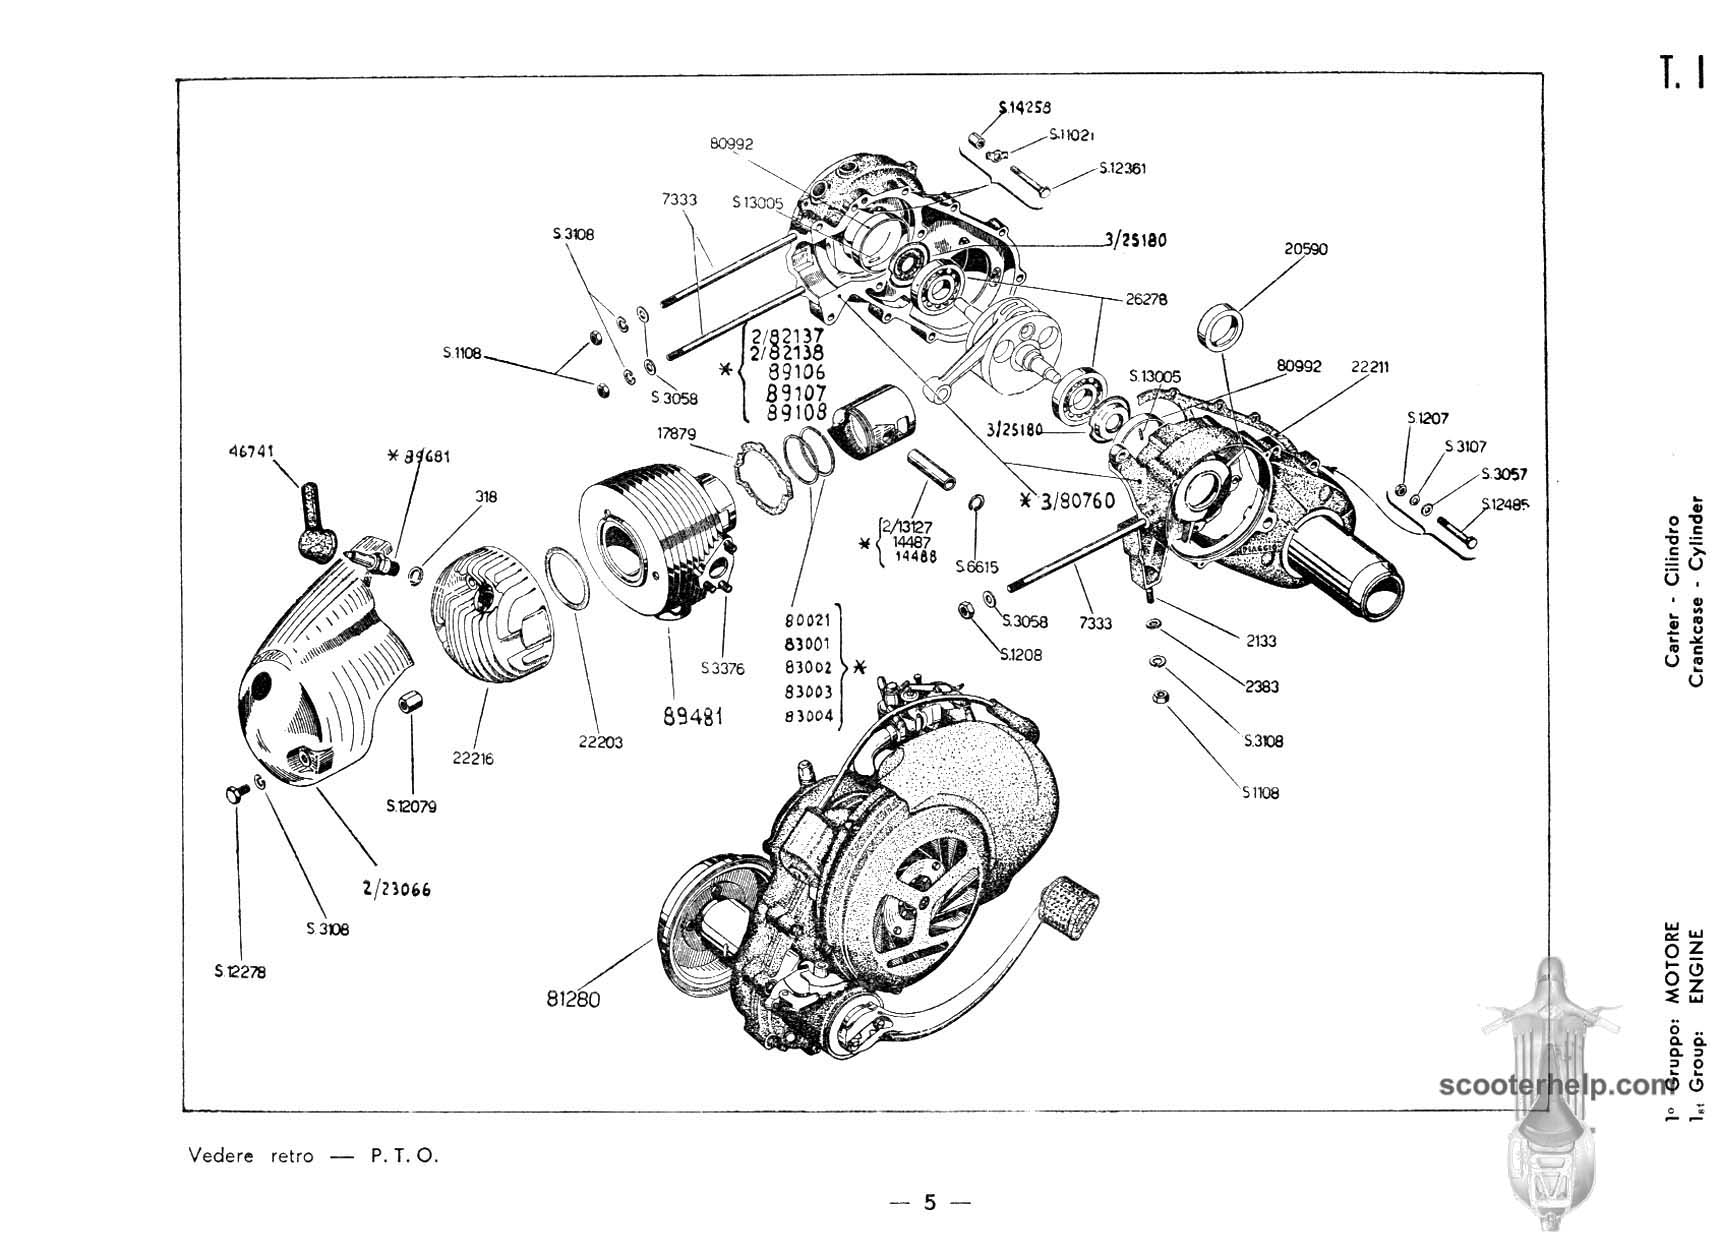 Vespa 150 Vb1t Parts Manual